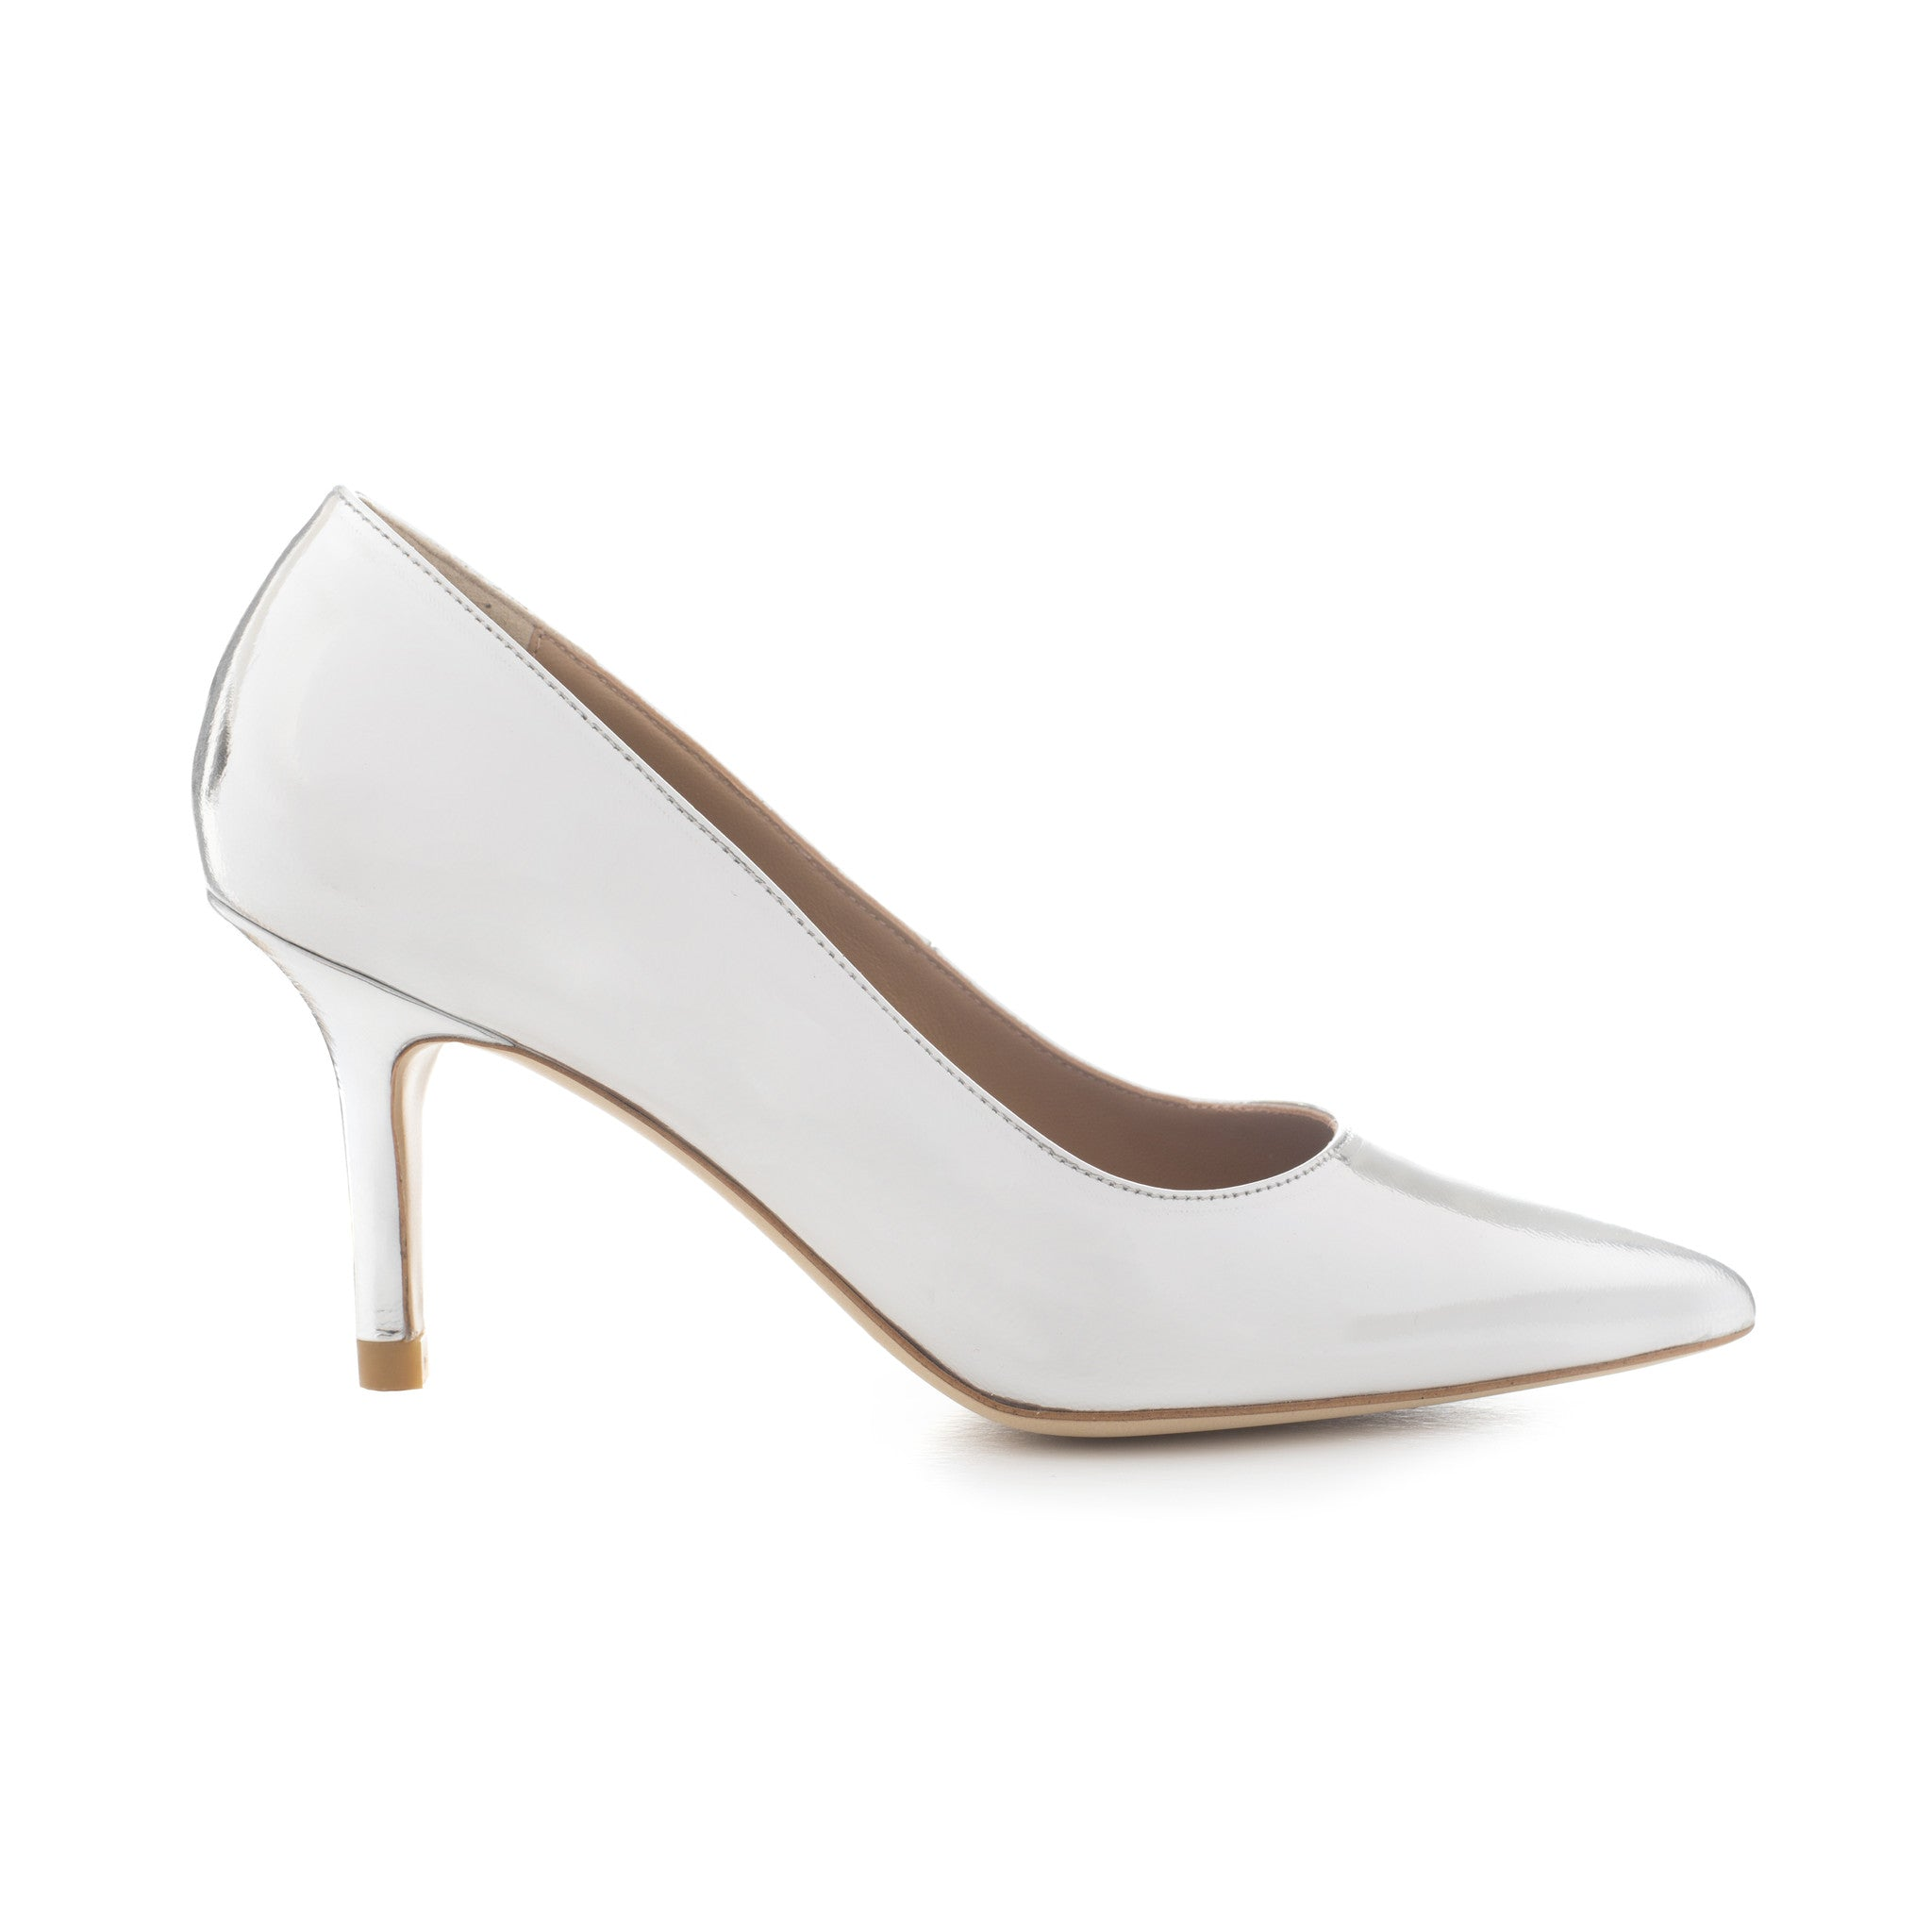 'SILVER 75' Metallic Leather Pumps